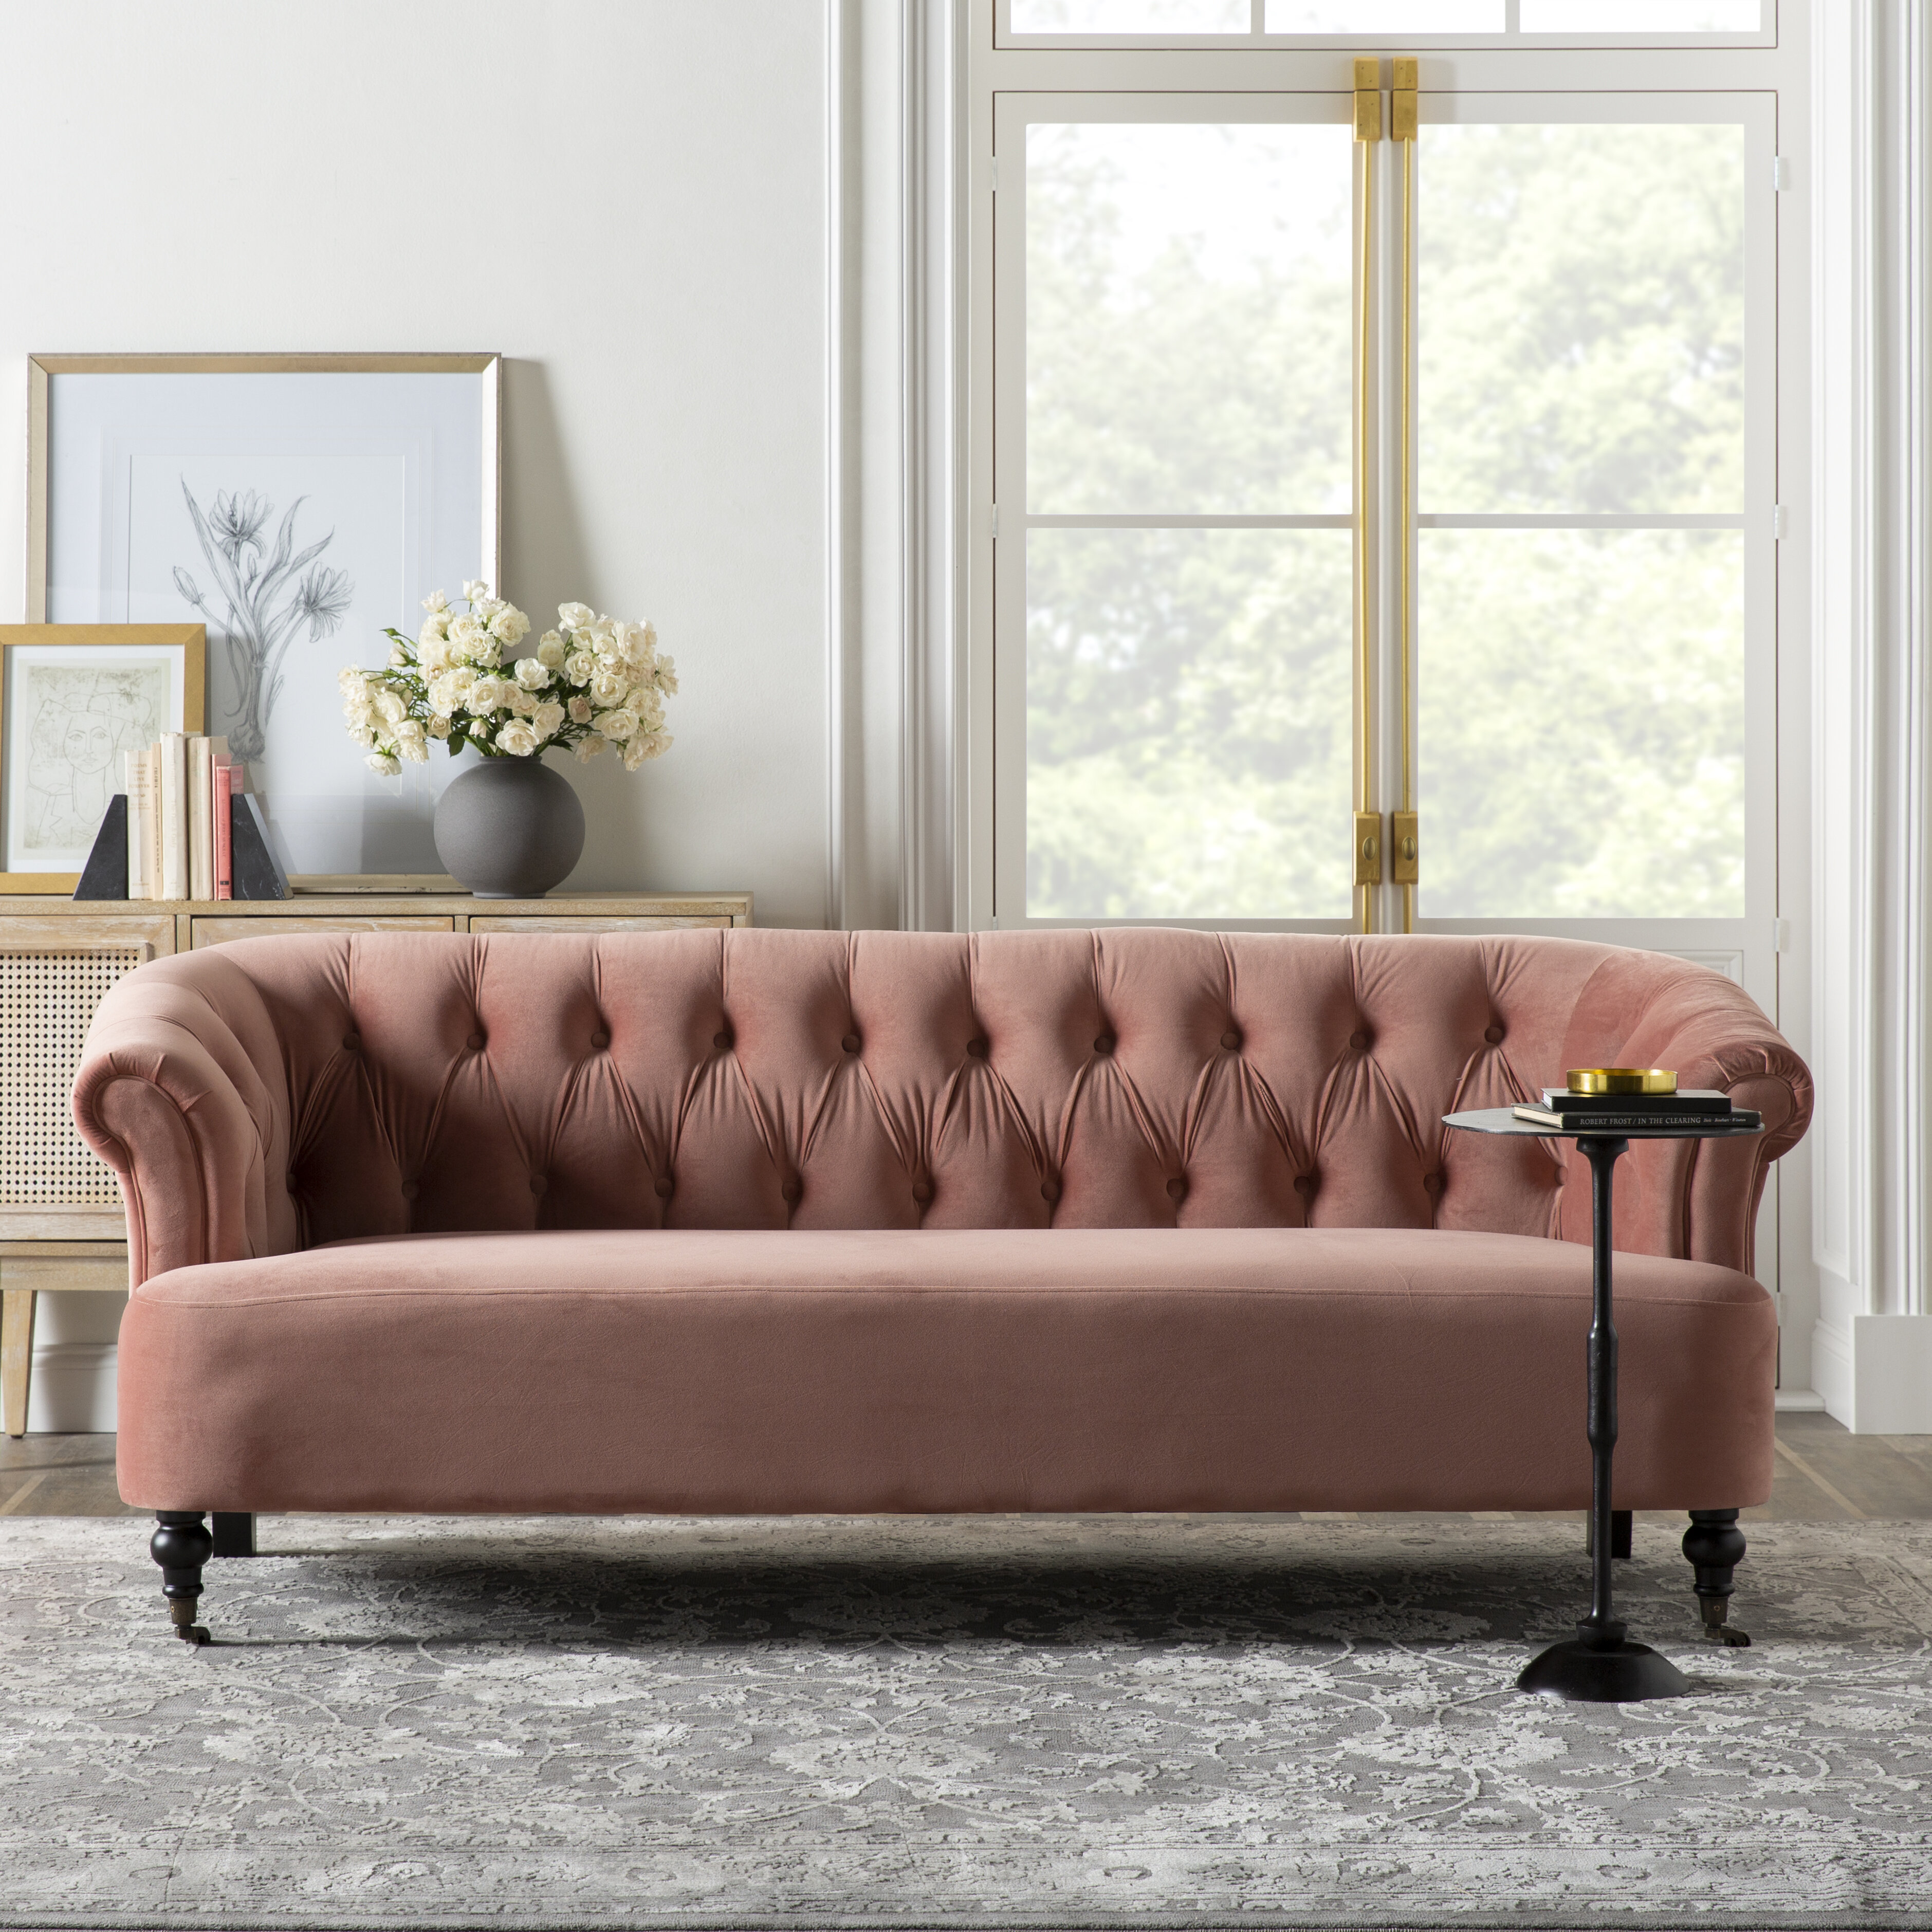 Kelly Clarkson Home 35 Wide Velvet Rolled Arm Sofa Bed Reviews Wayfair